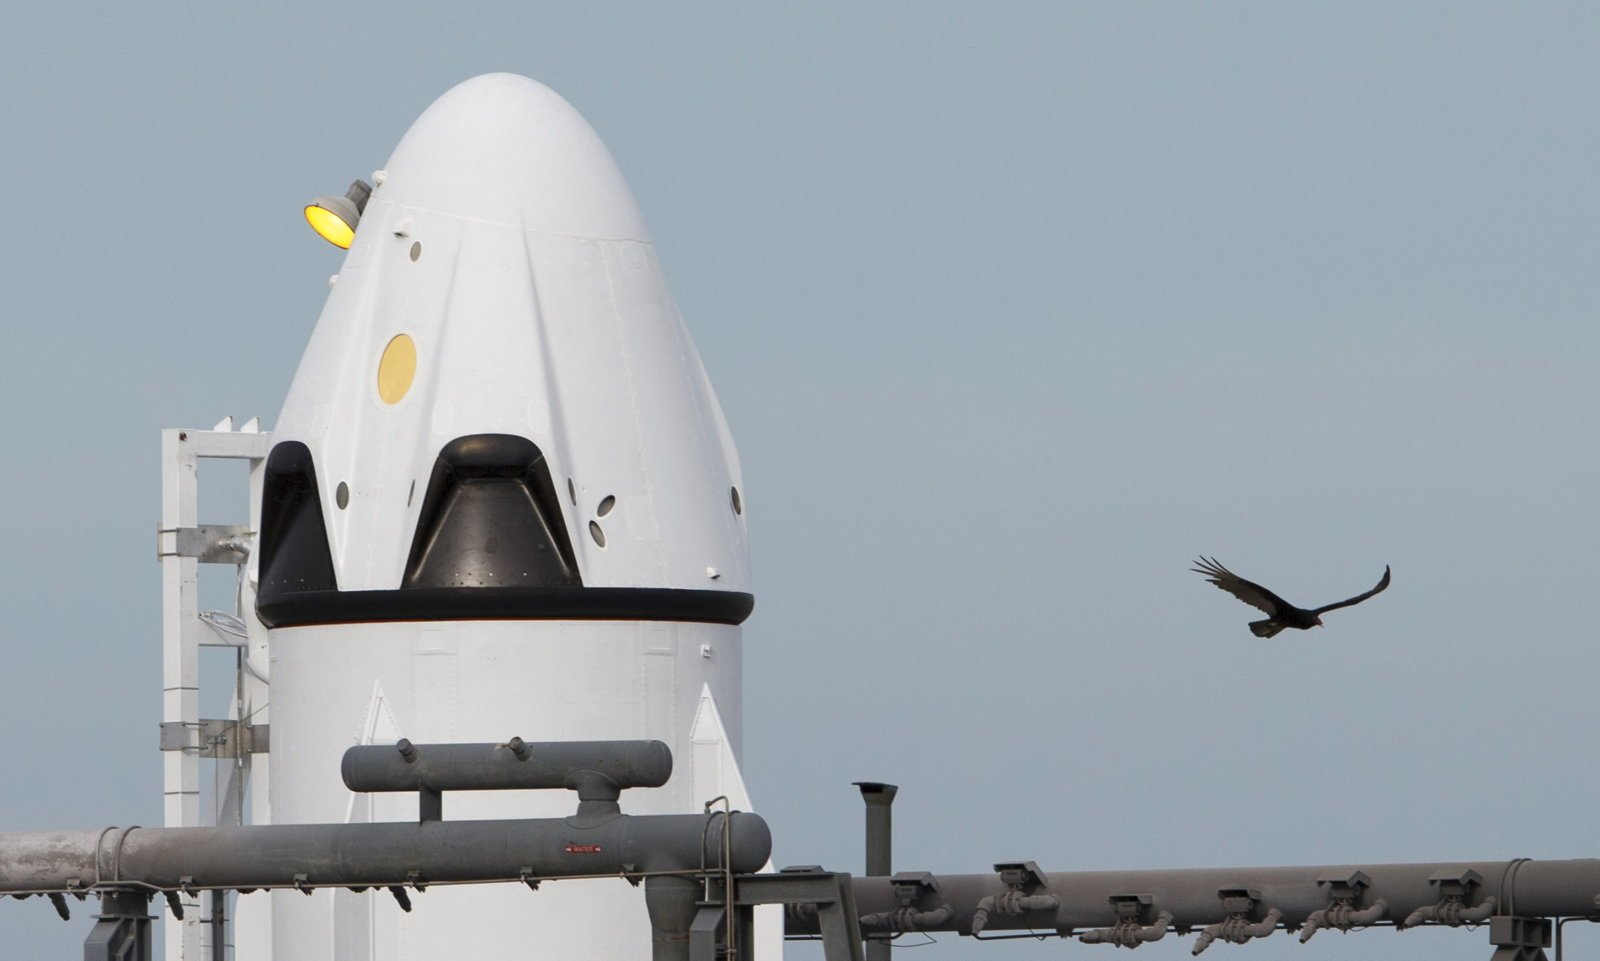 SpaceX is getting closer to the beginning of their manned space launches